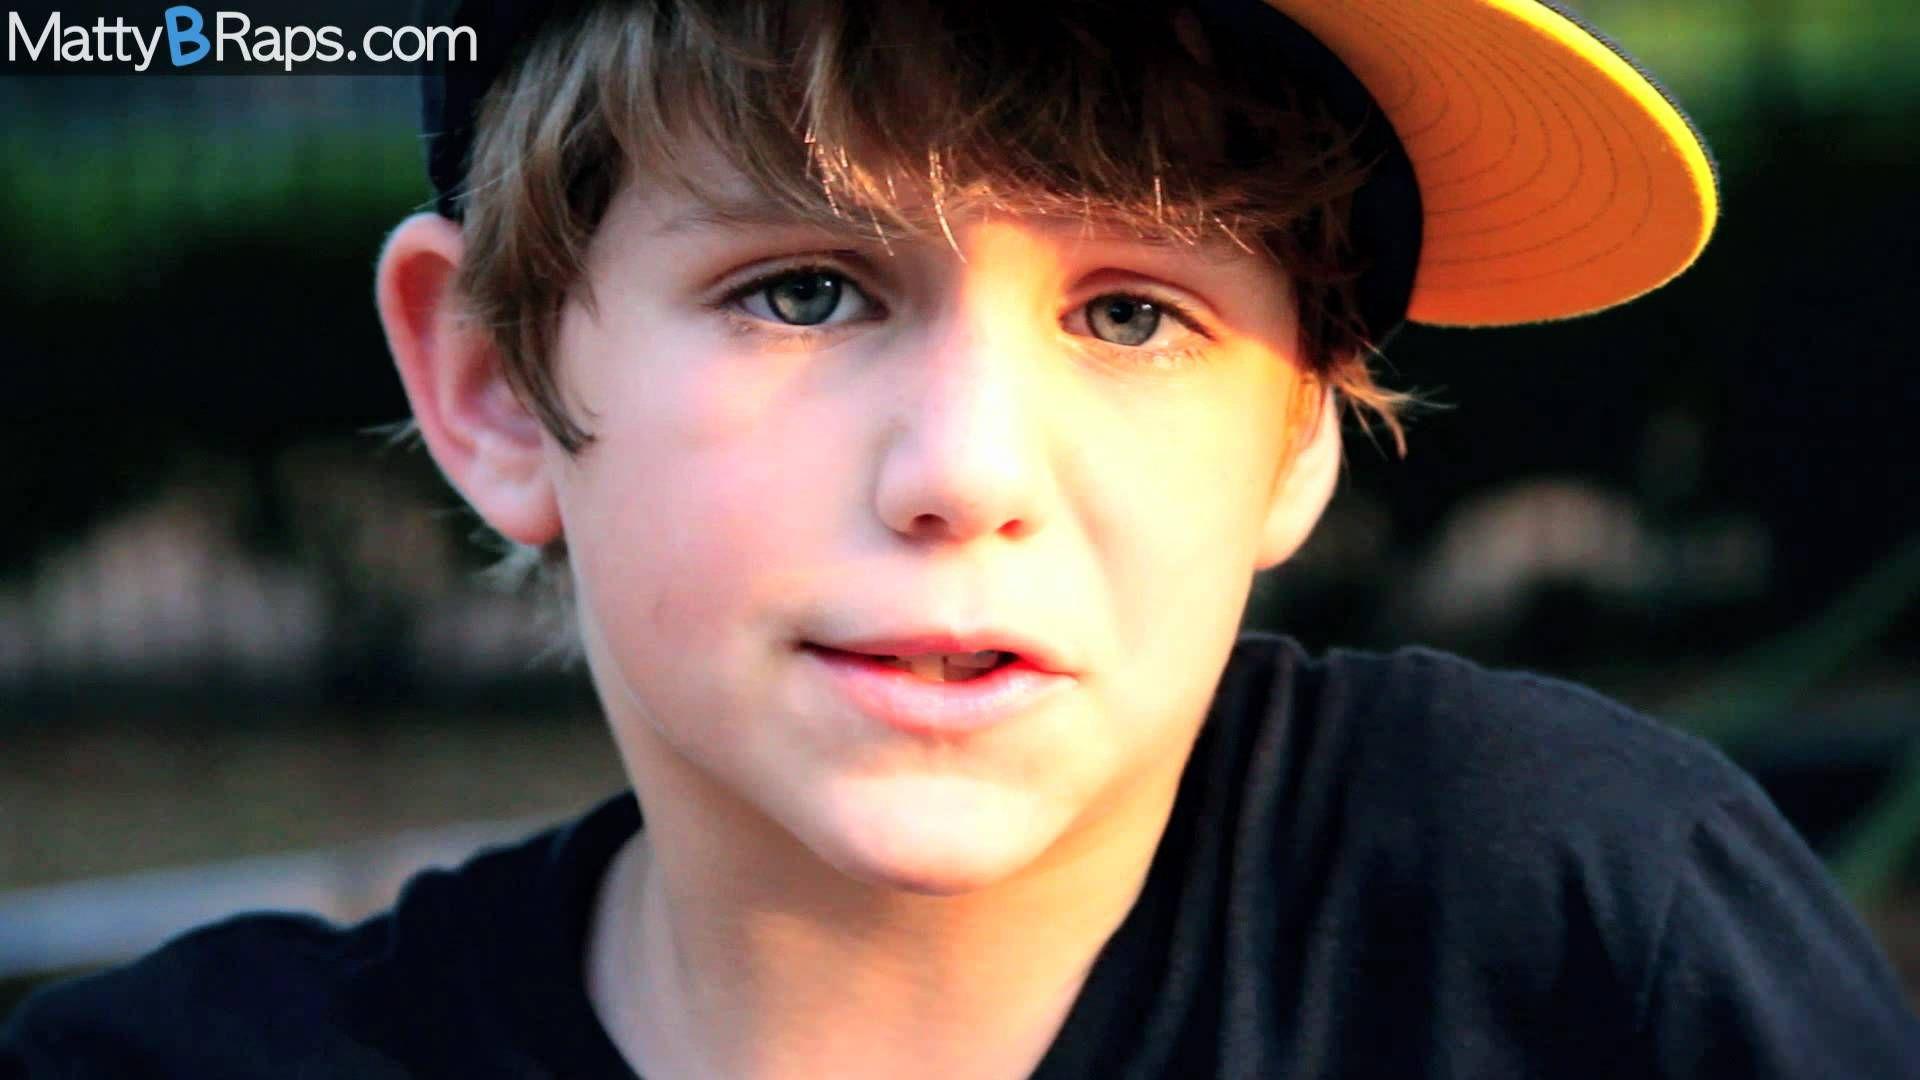 This is MattyB and he LOVES to rap Right now he s 8 years old and